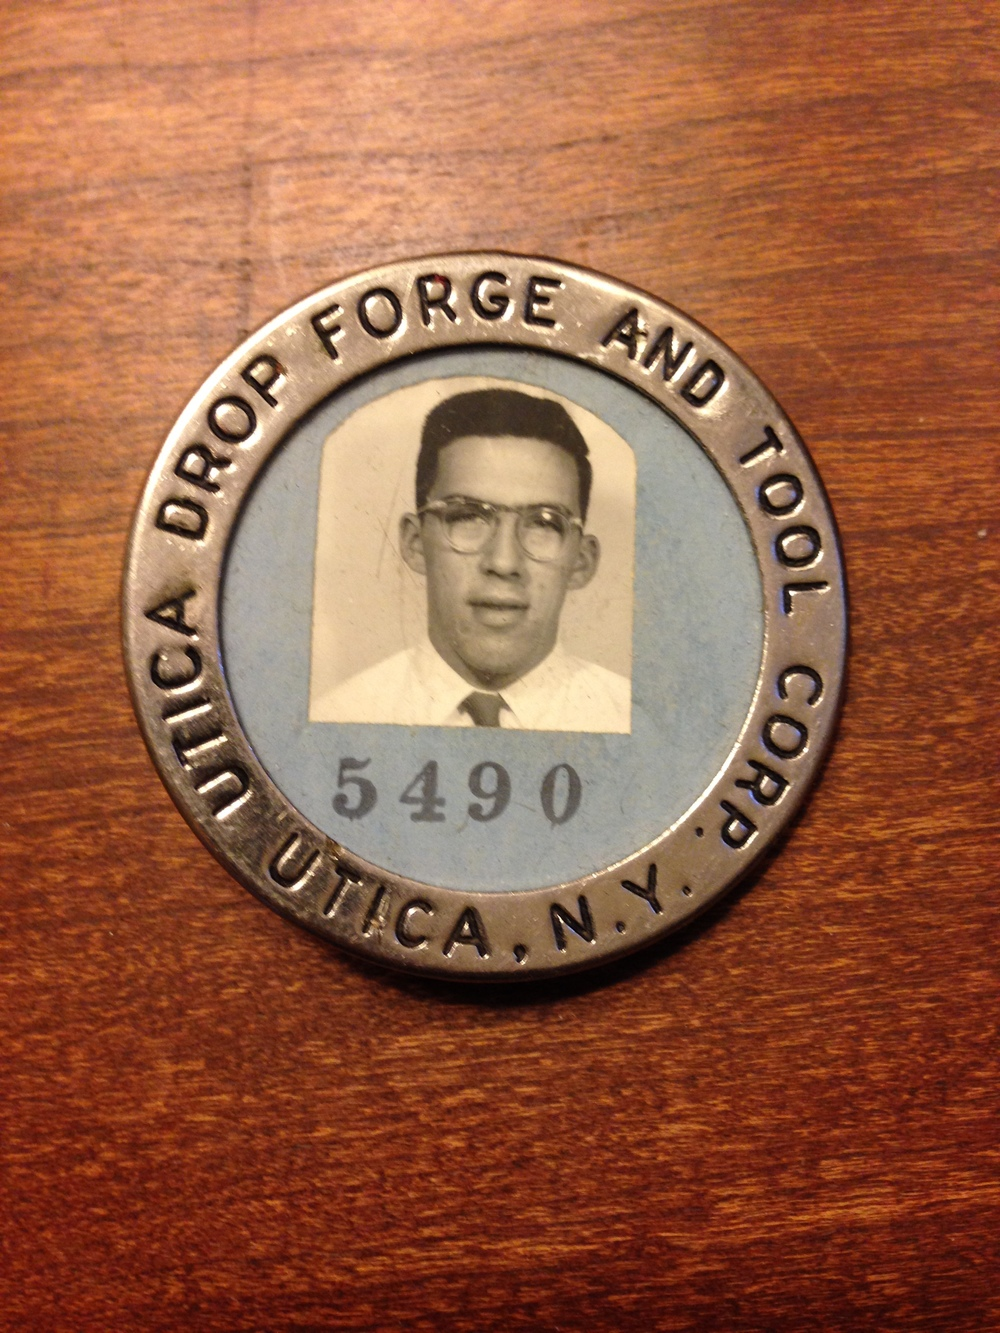 Katharine's Dad's Utica Drop Forge & Tool badge, circa 1953